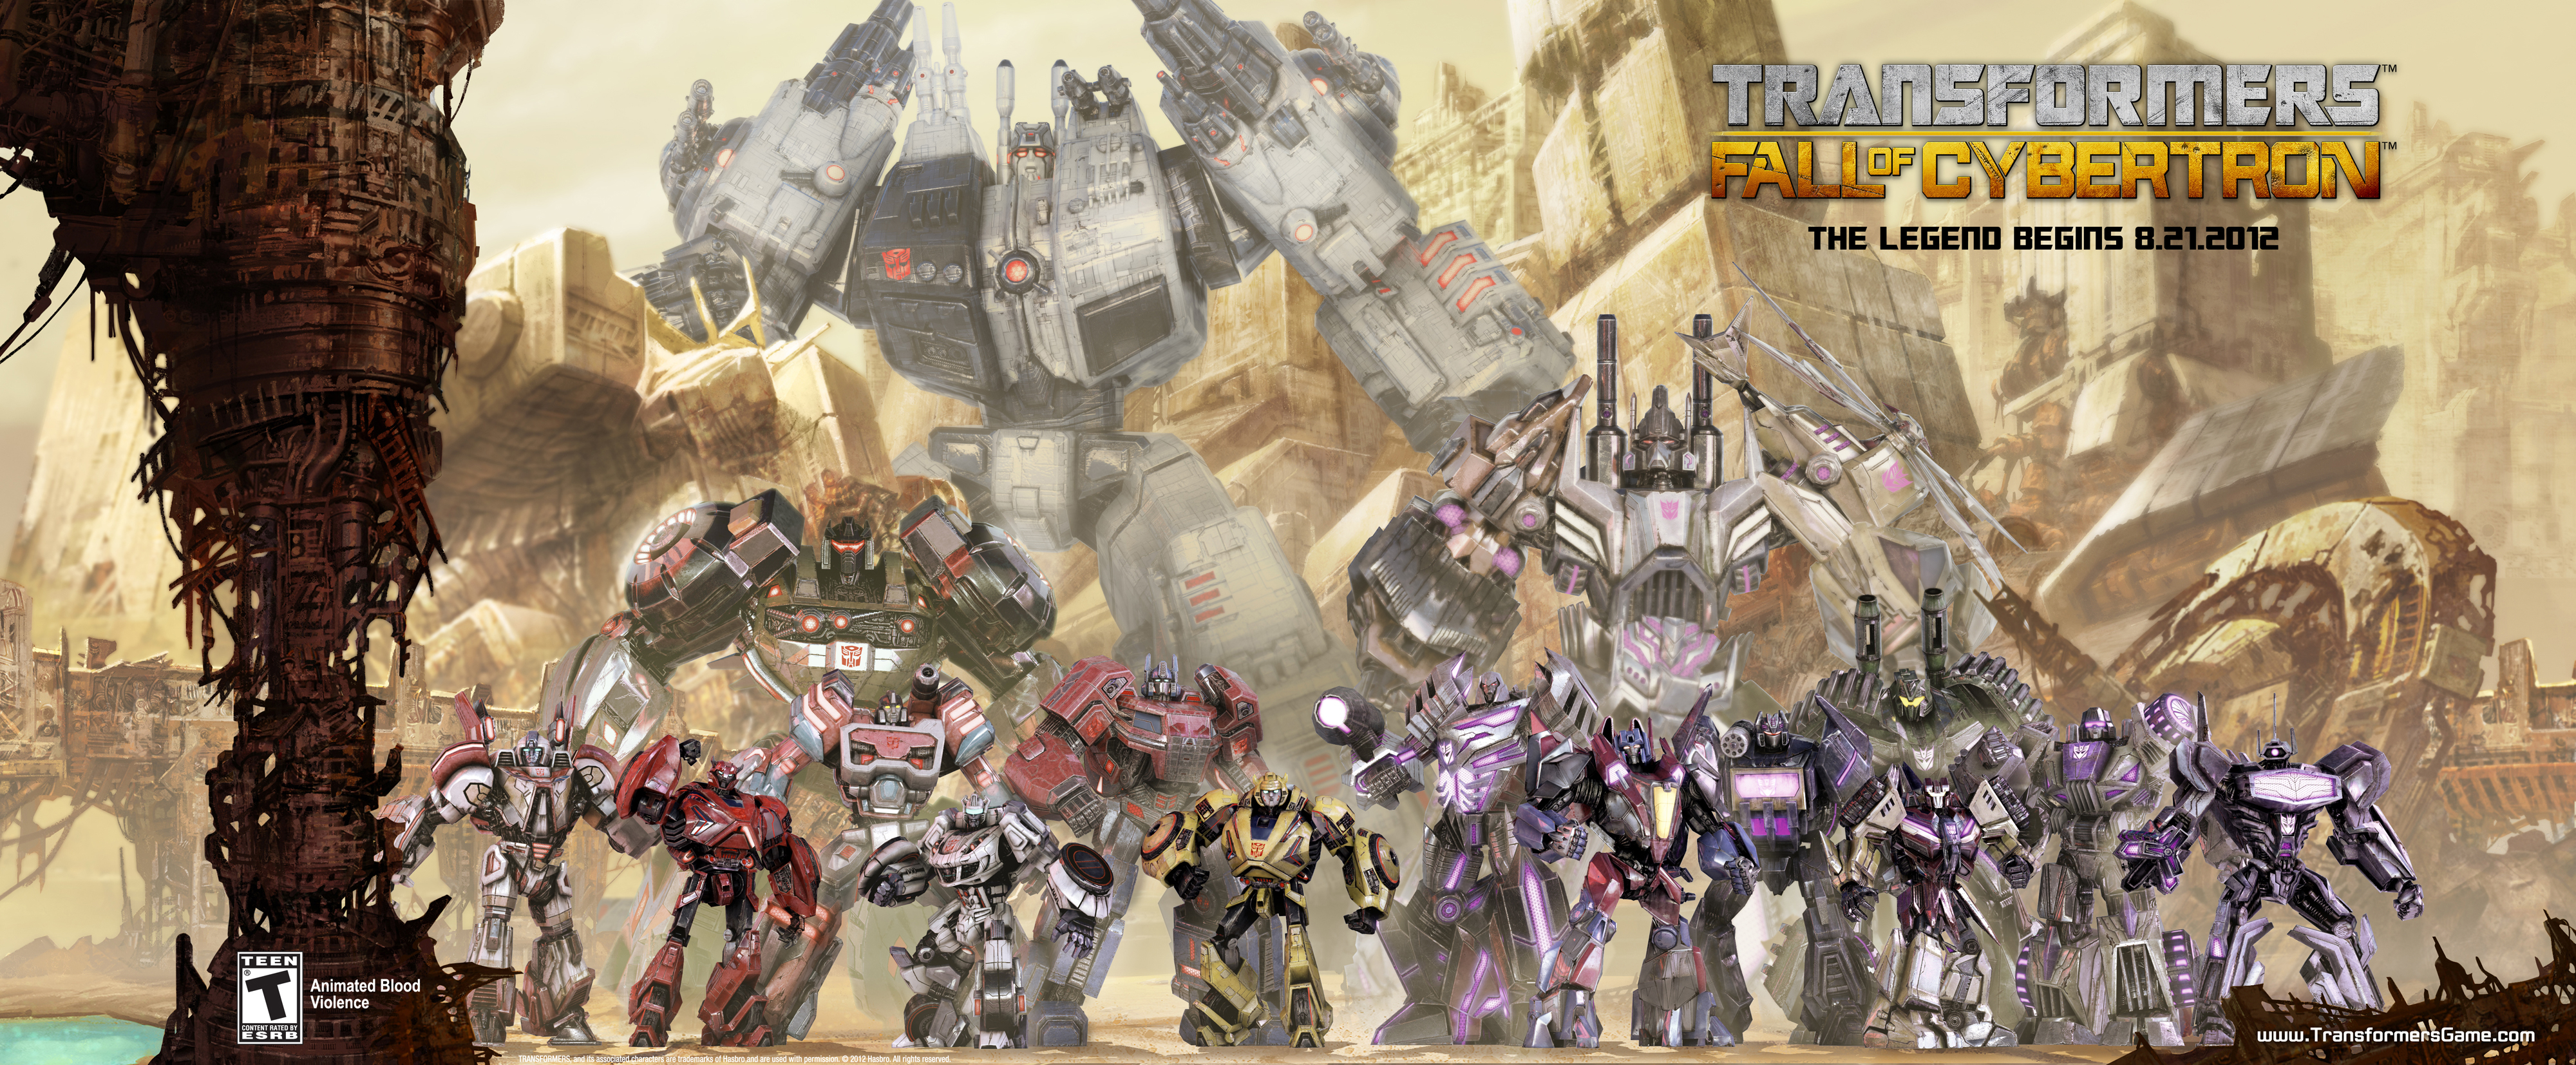 Transformers: Fall of Cybertron TFP